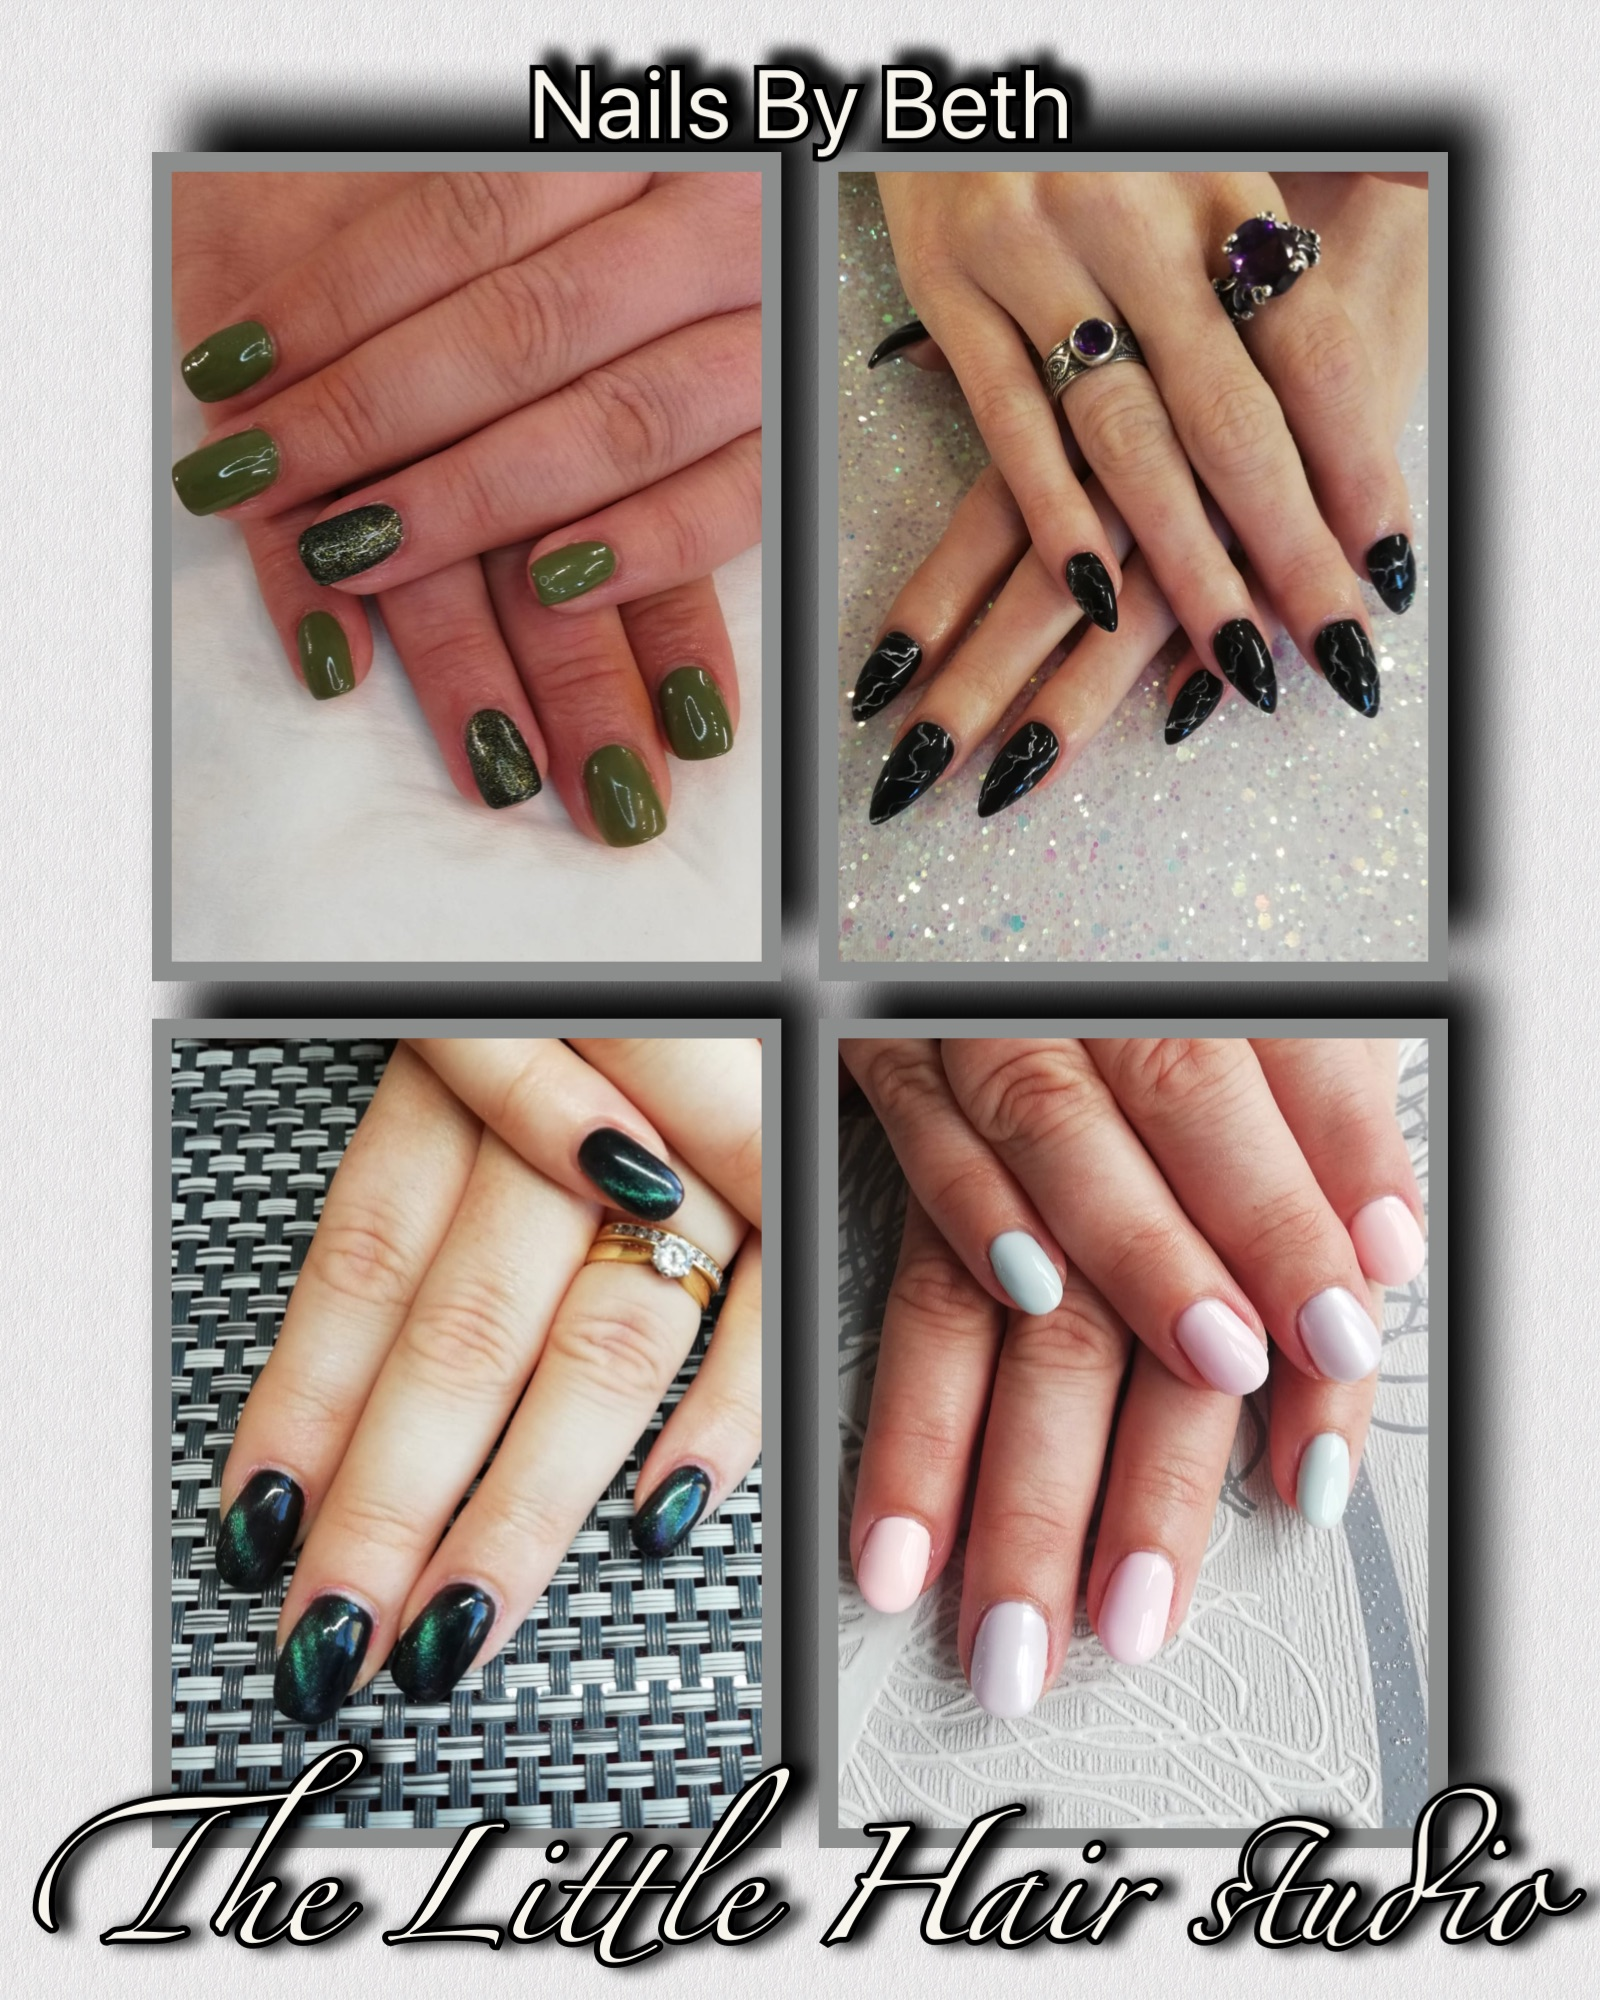 Nails By Beth